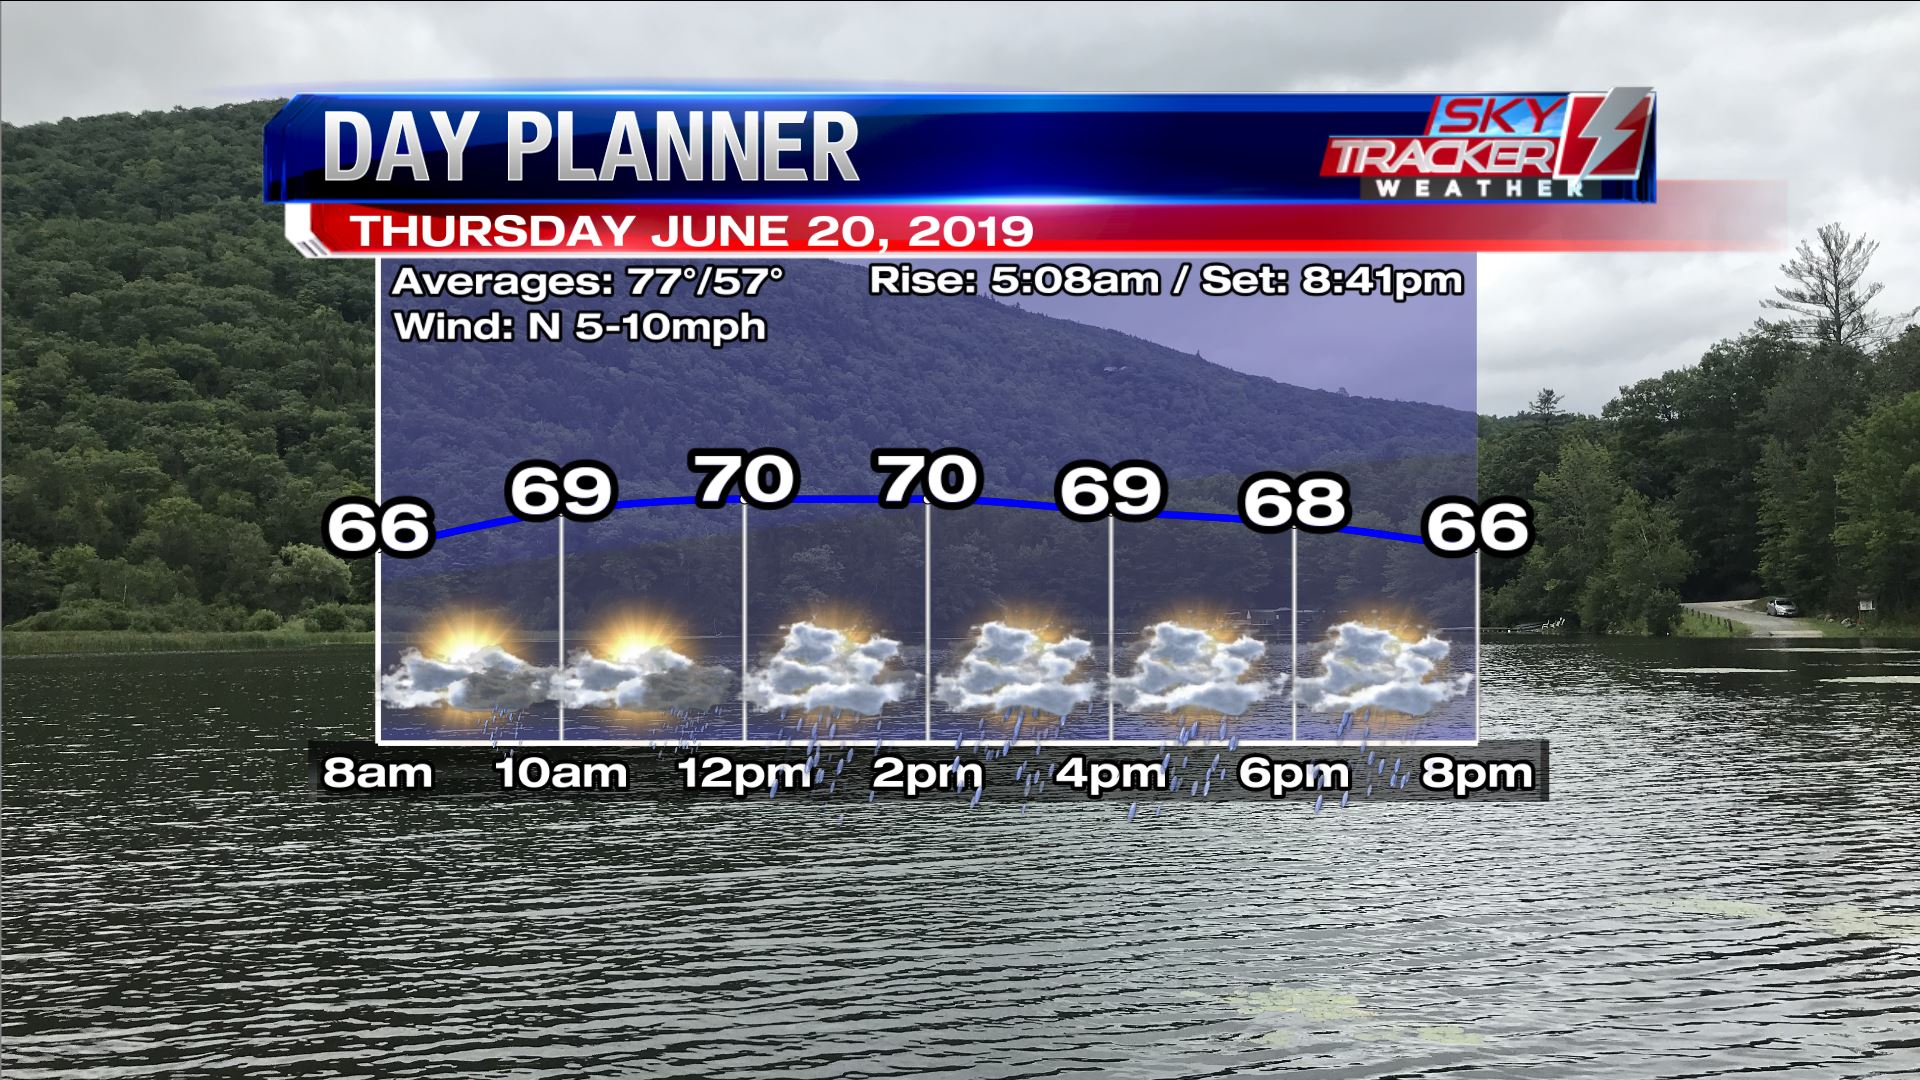 Planner for Thursday June 19 2019